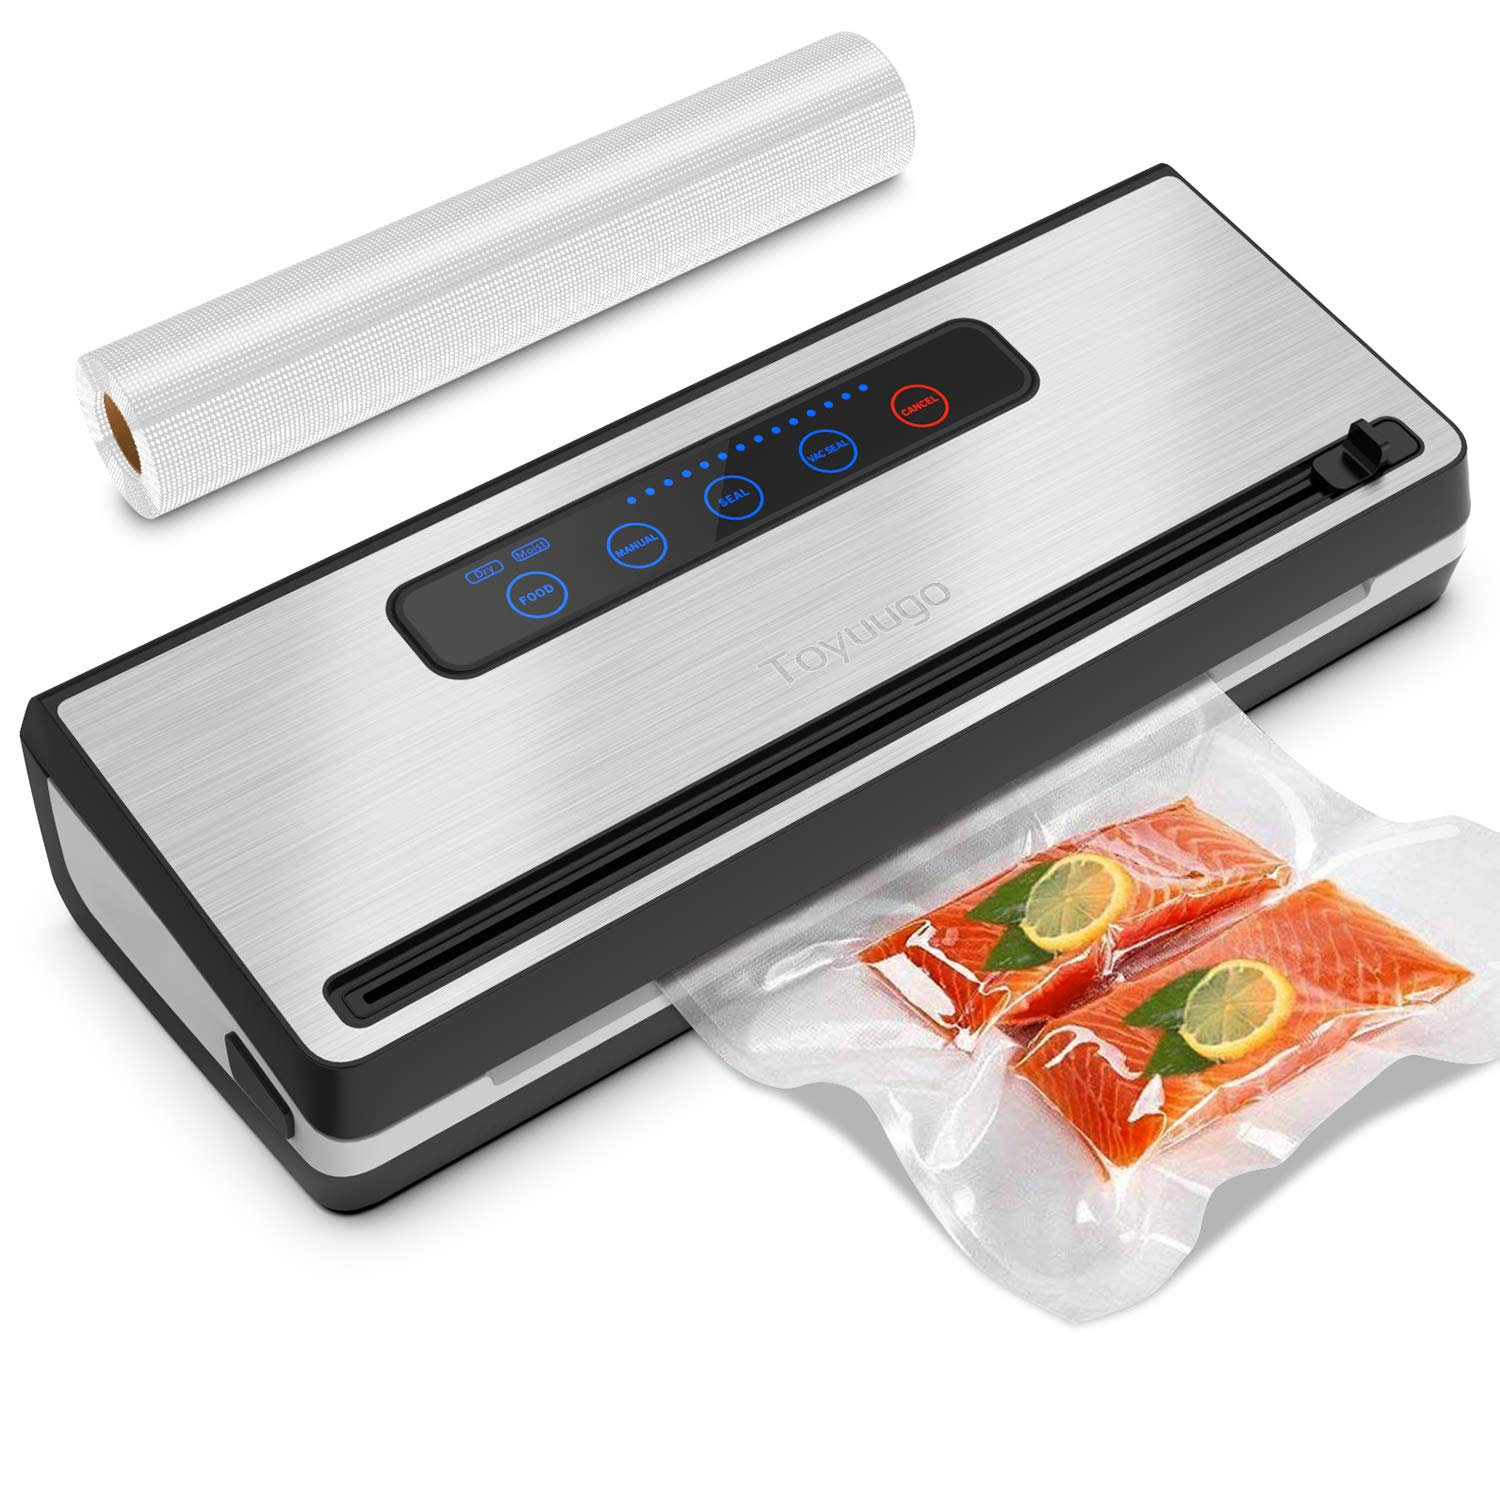 Upgraded Vacuum Sealer Machine, Toyuugo Automatic Vacuum Air Sealing System with Dry & Moist Food Modes and One Roll Starter Kit for Food Preservation and Sous Vide by toyuugo